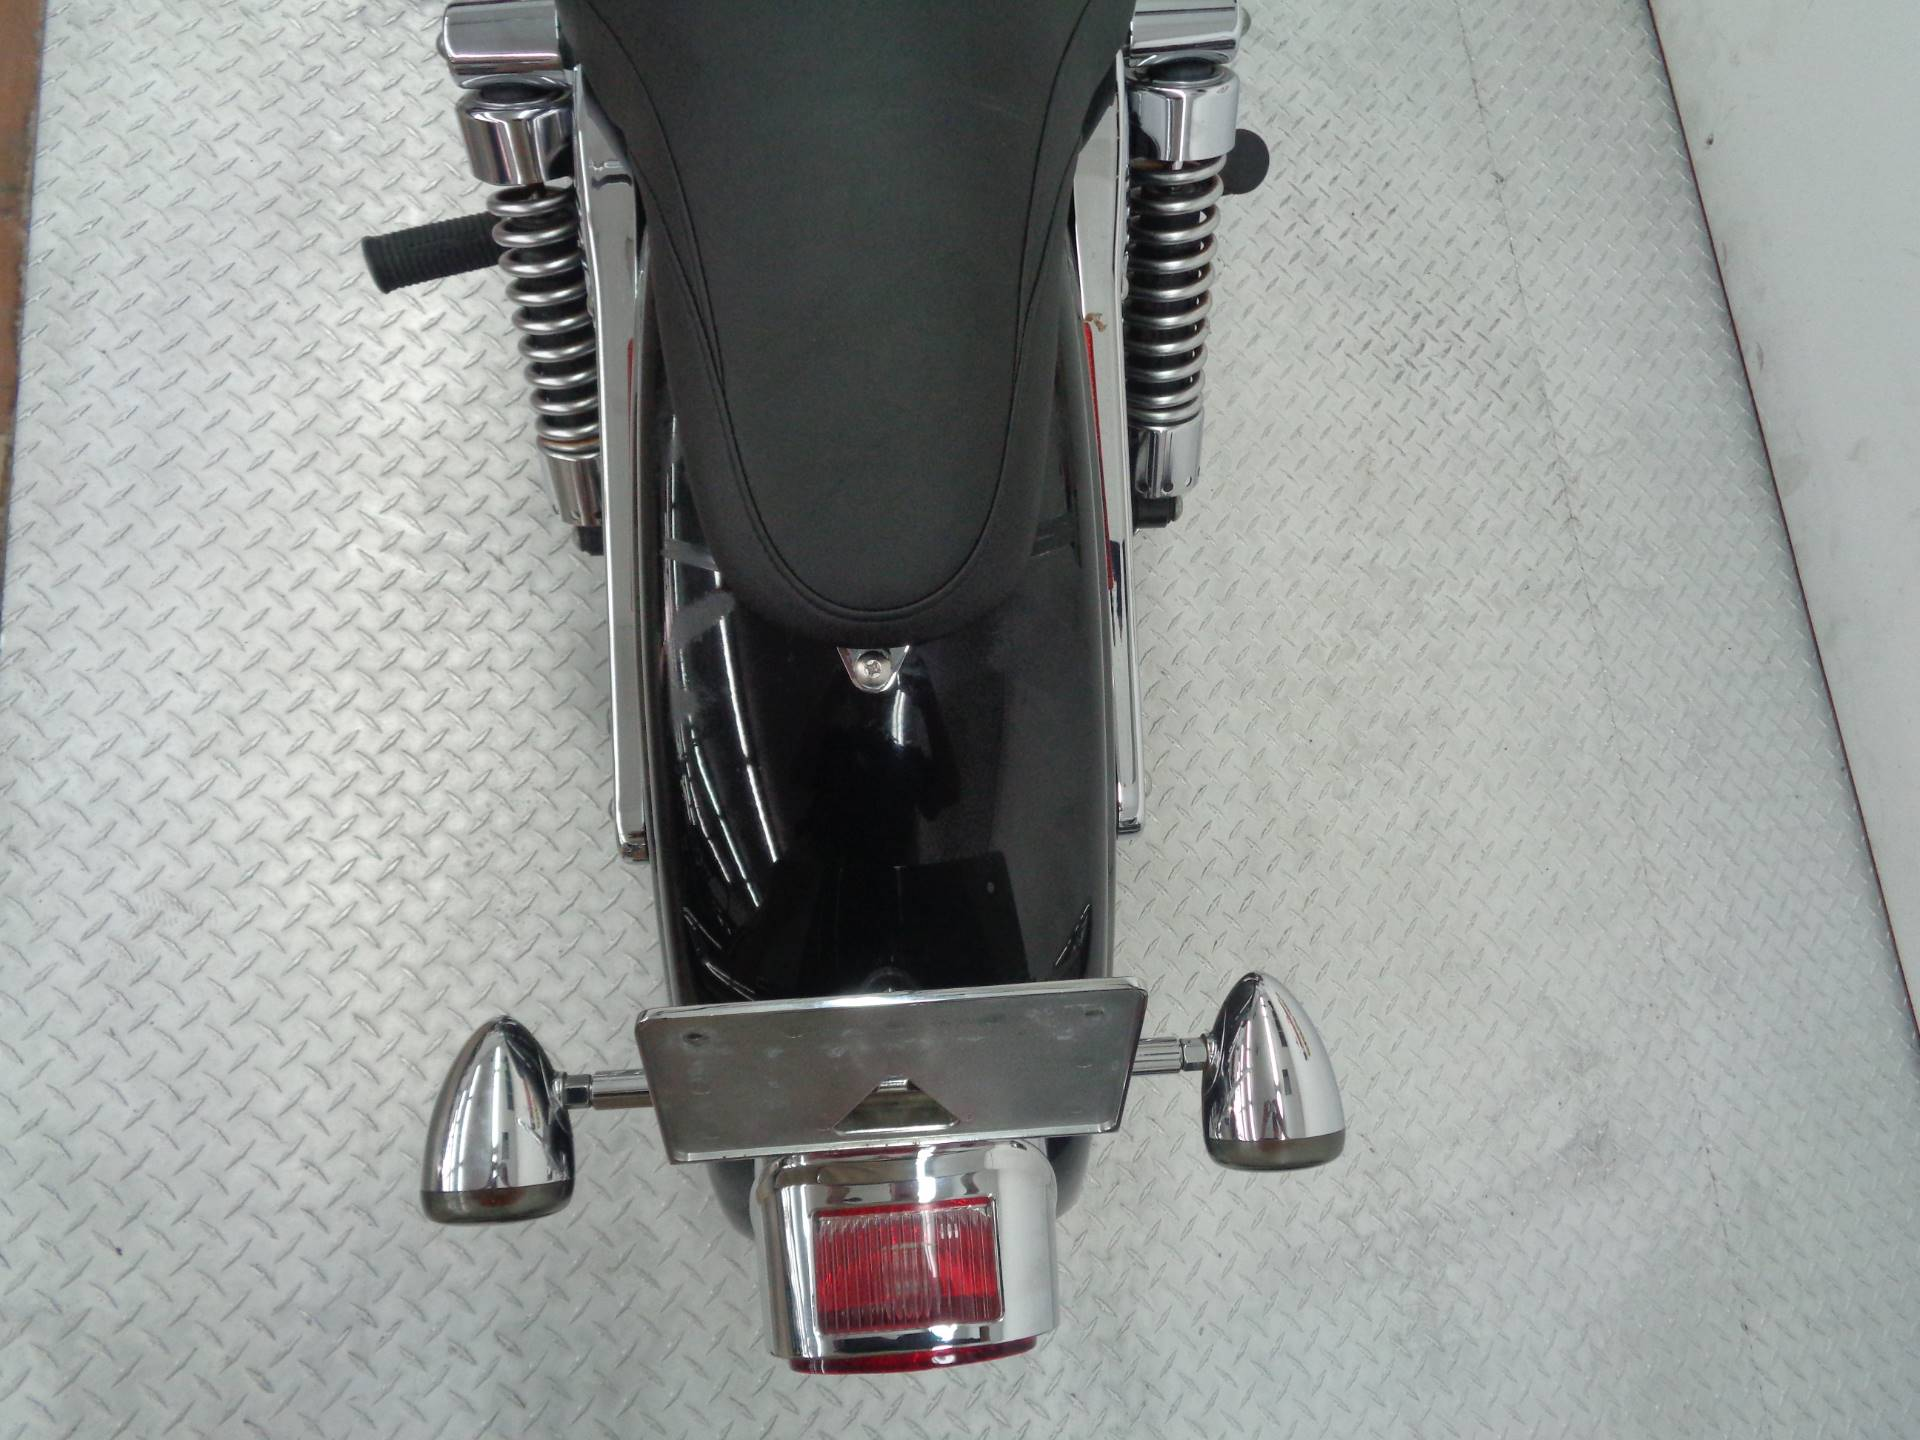 2009 Harley-Davidson Dyna Super Glide Custom in Tulsa, Oklahoma - Photo 3